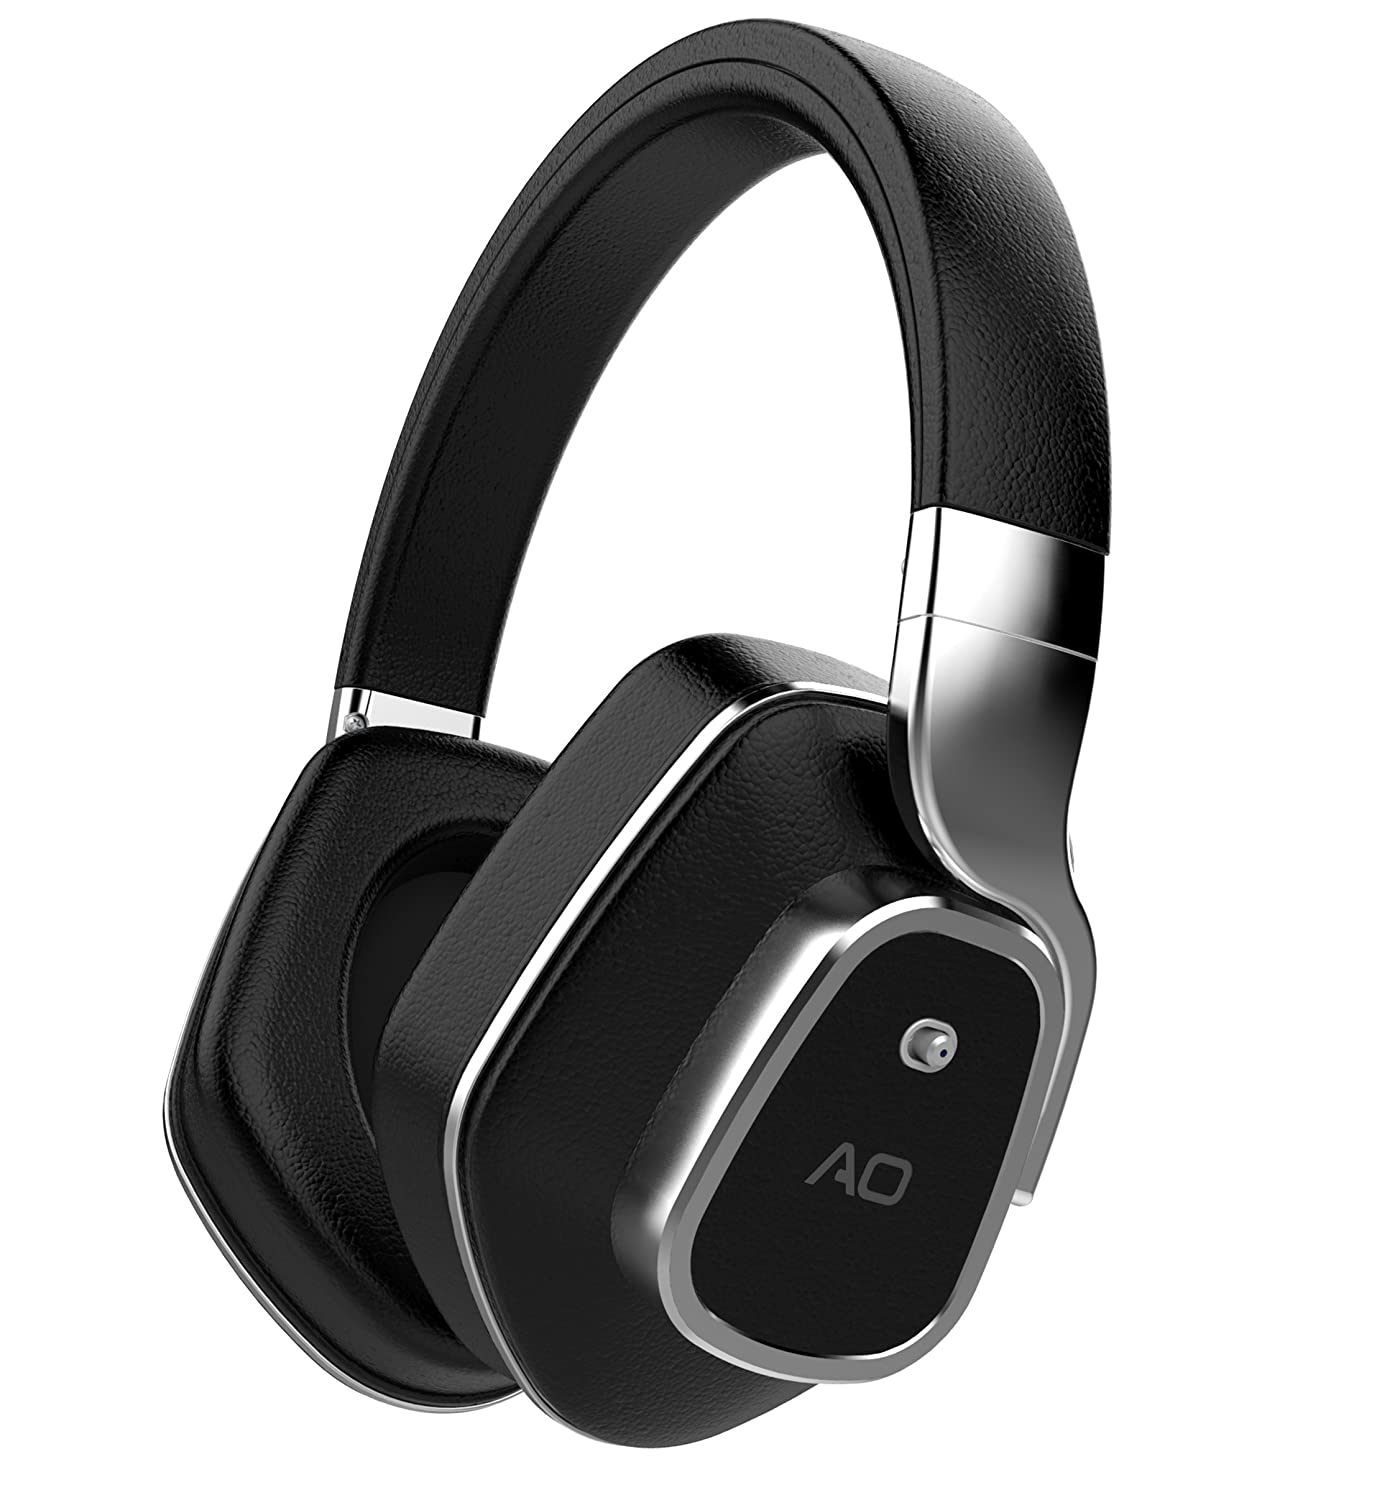 AO Active Noise Cancelling Wireless Bluetooth Headphones - M7 (Black)